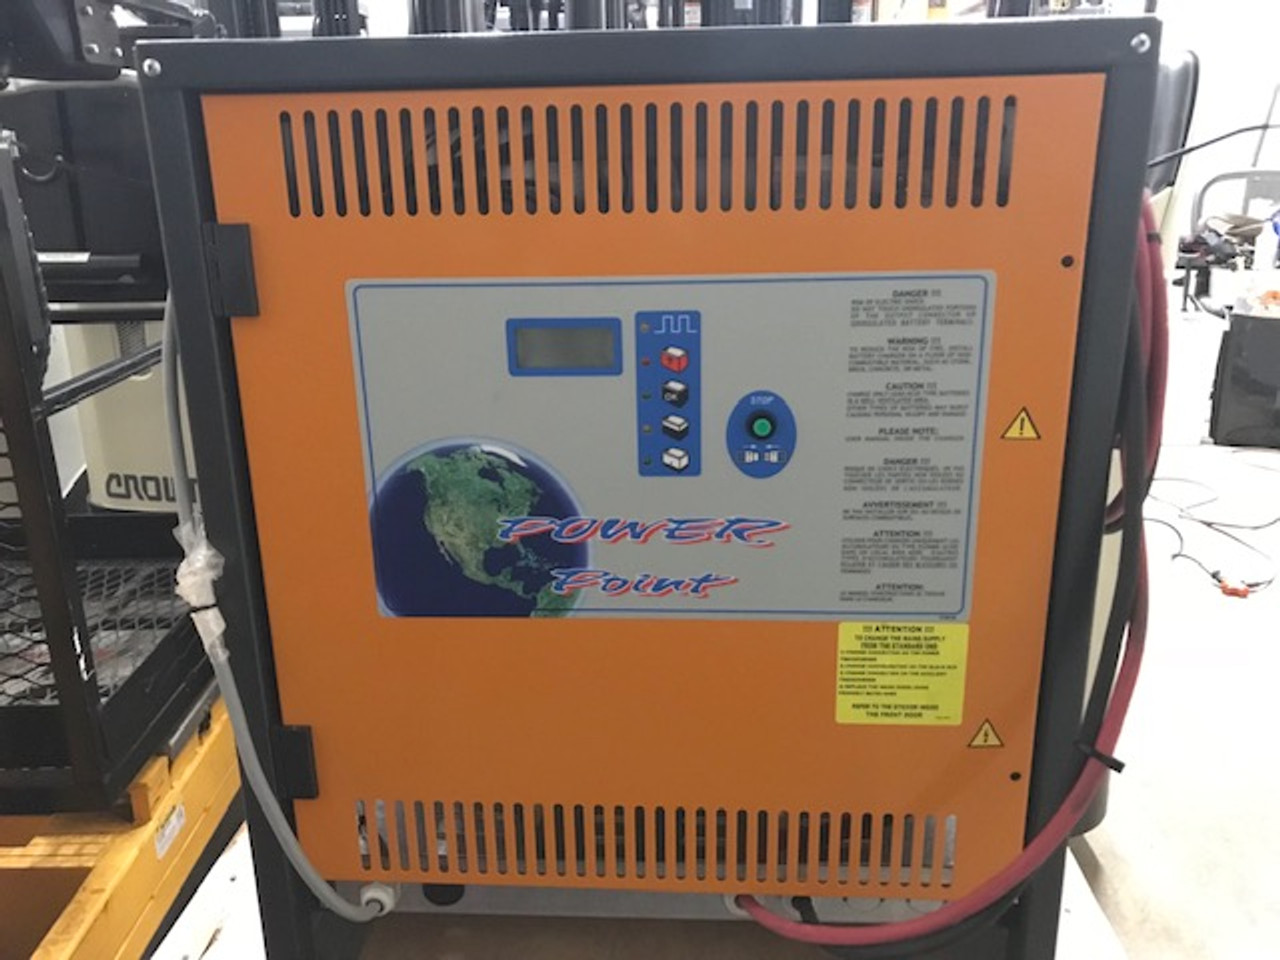 48 Volt NEW Forklift Battery Charger,  3 Phase, 500-700 Amp Hour 208/240/480 Volts Input